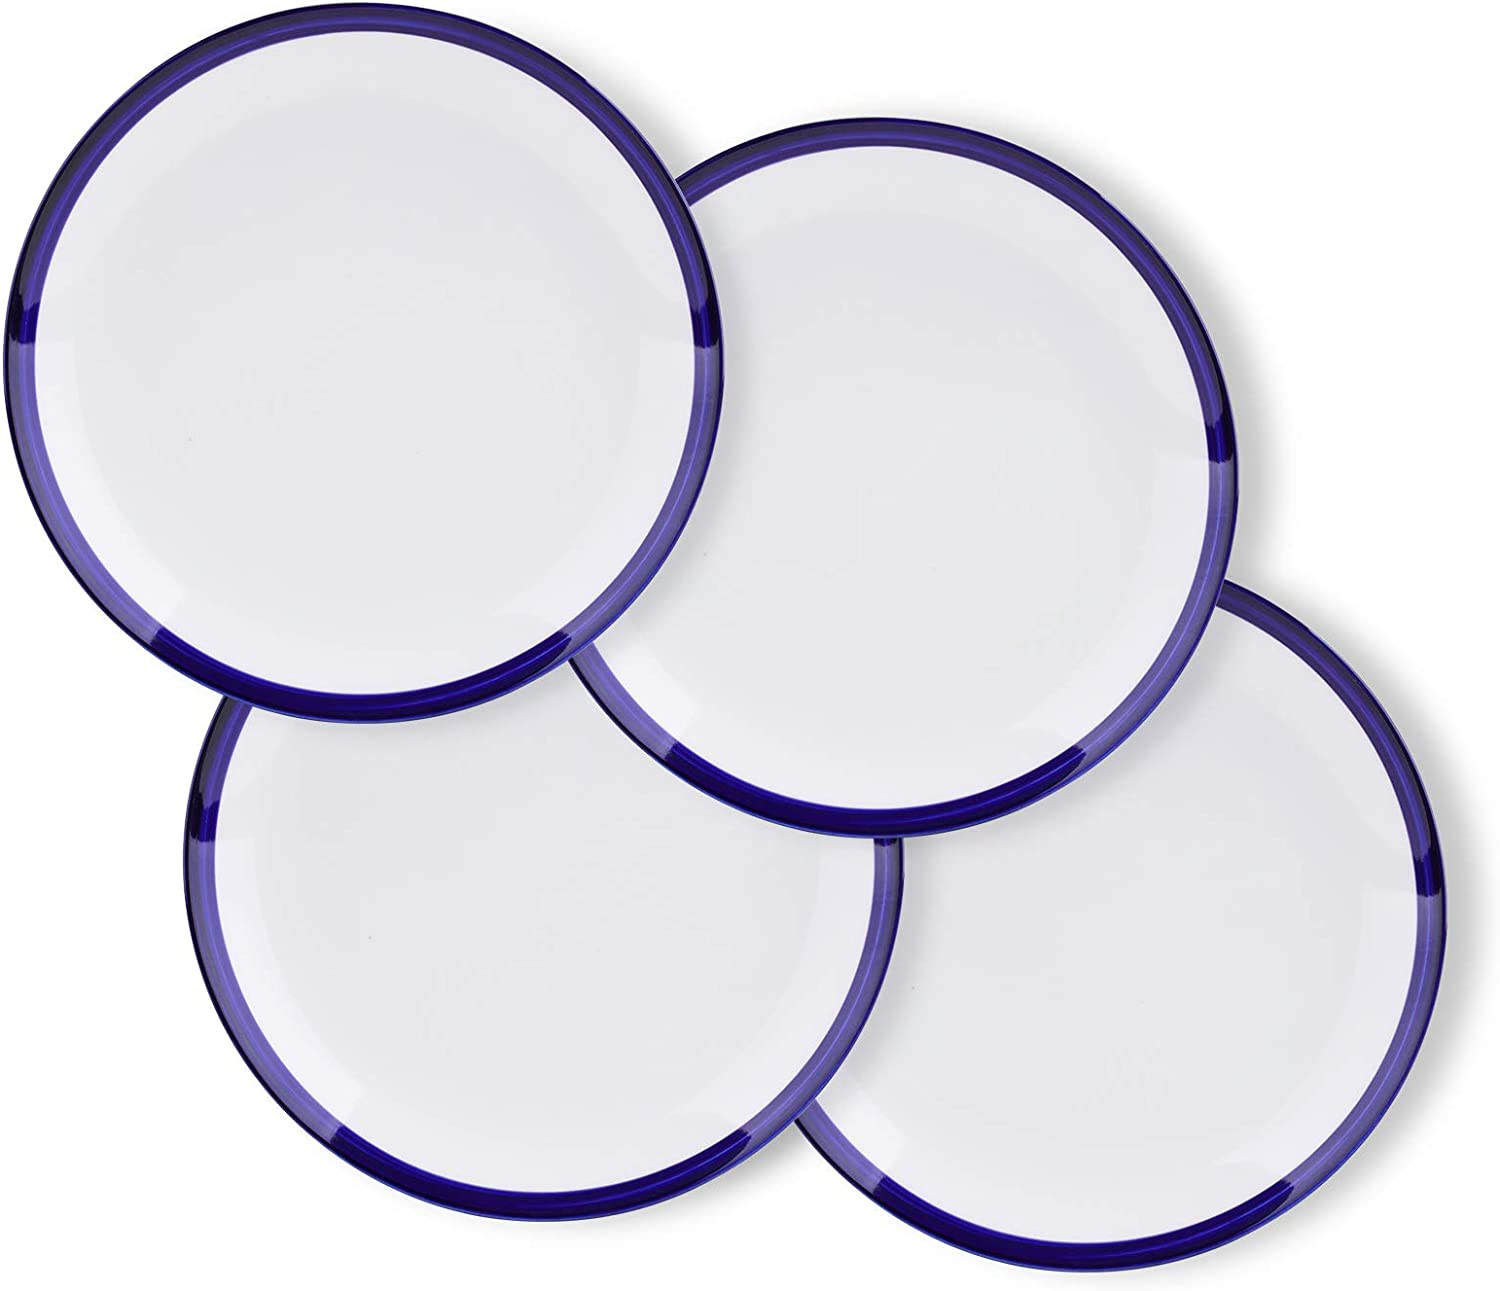 Amoi Blue Rimmed White Ceramic Dinner Plates Set, Microwavable Flat Plates Chip Resistant Dinnerware for Banquet and Daily Use, Set of 4(7.7 inch)